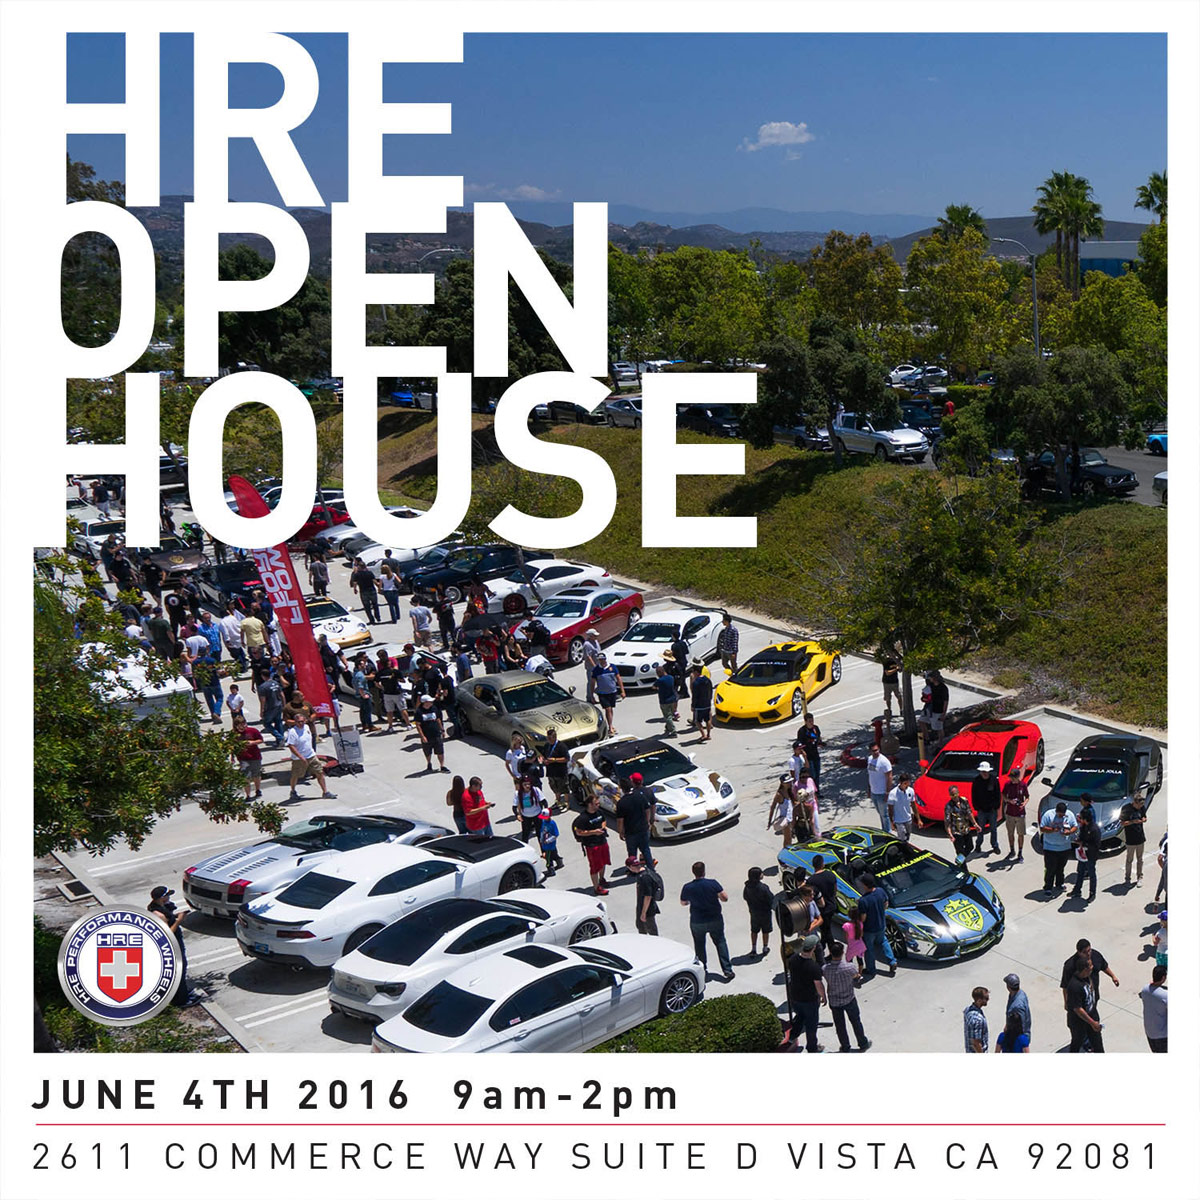 HRE Open House 2016